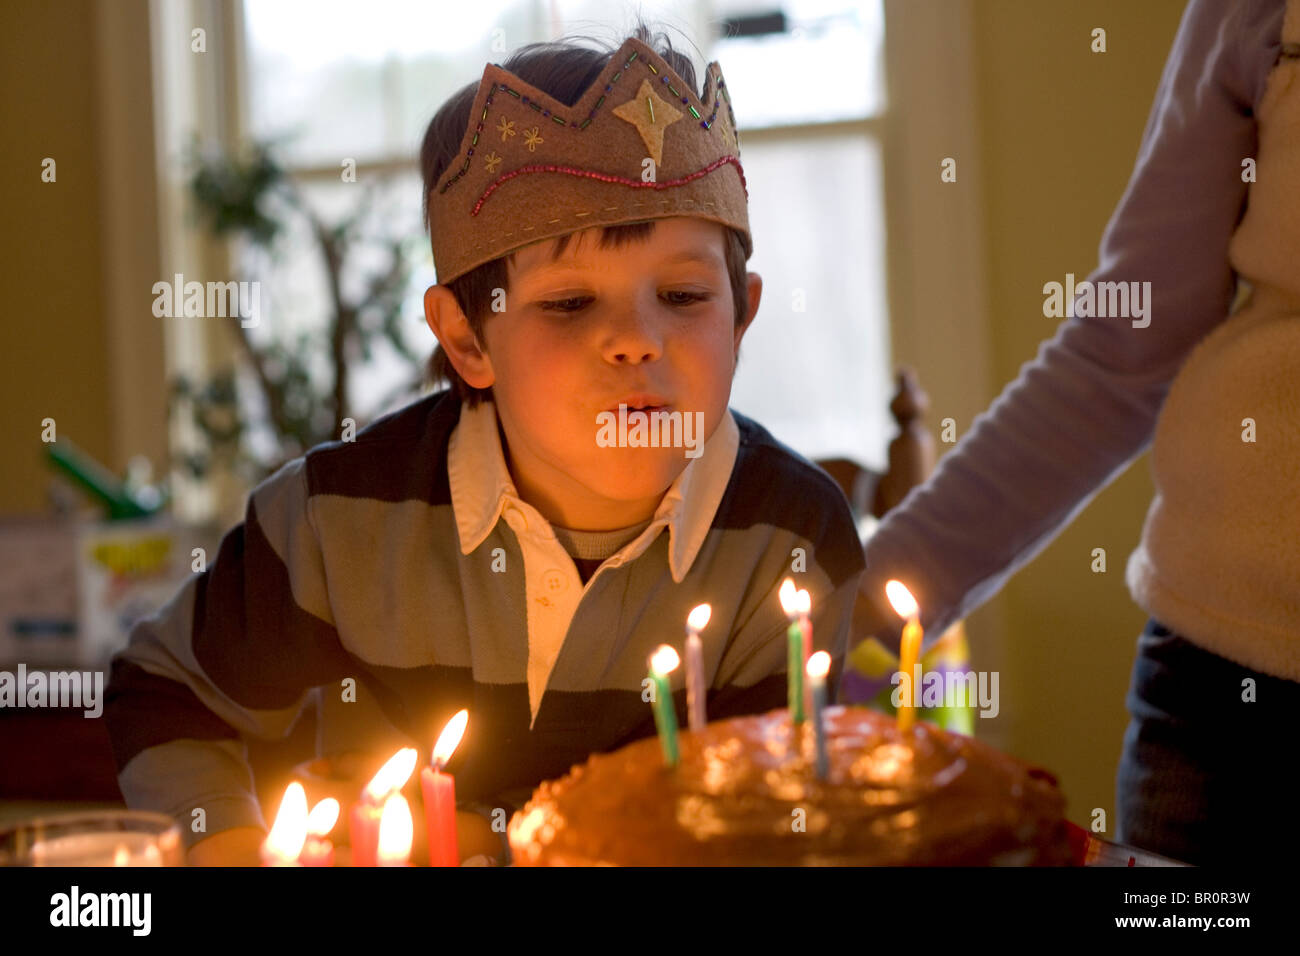 A Young Boy Blows Out Candles And Celebrates His 6th Birthday At Home In Yarmouth Maine